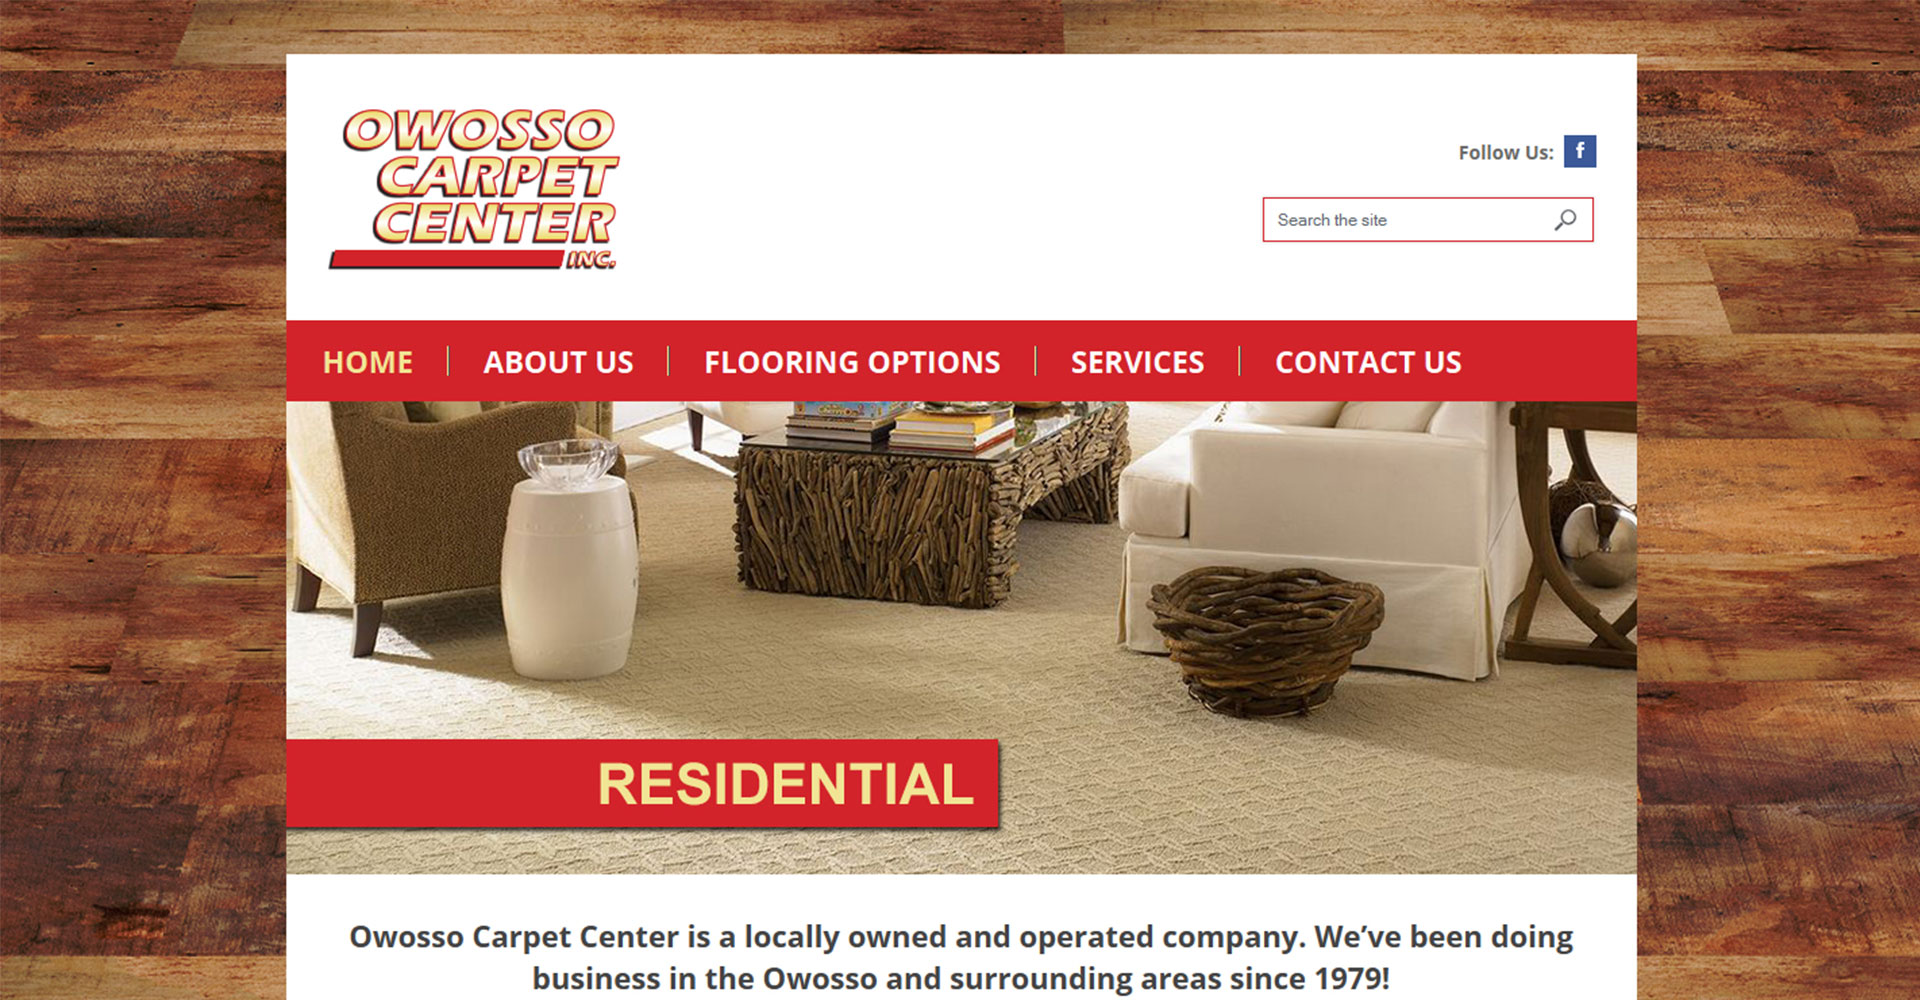 Owosso Carpet Center - Zoda Design